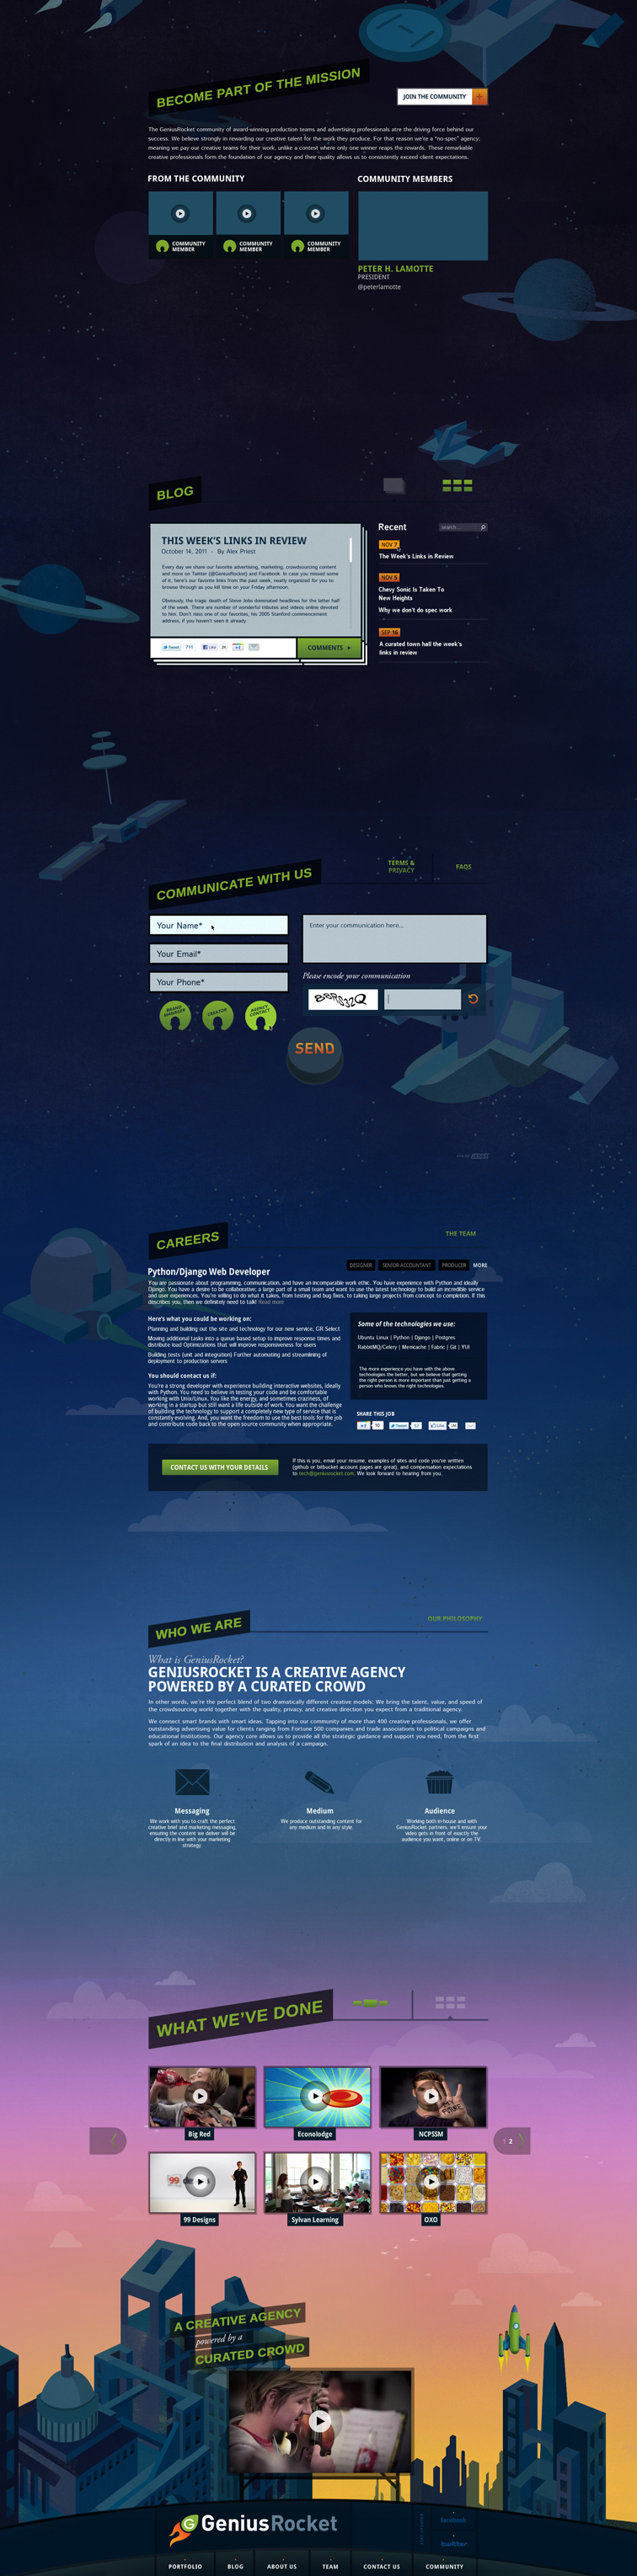 GeniusRocket Website Redesign 2295